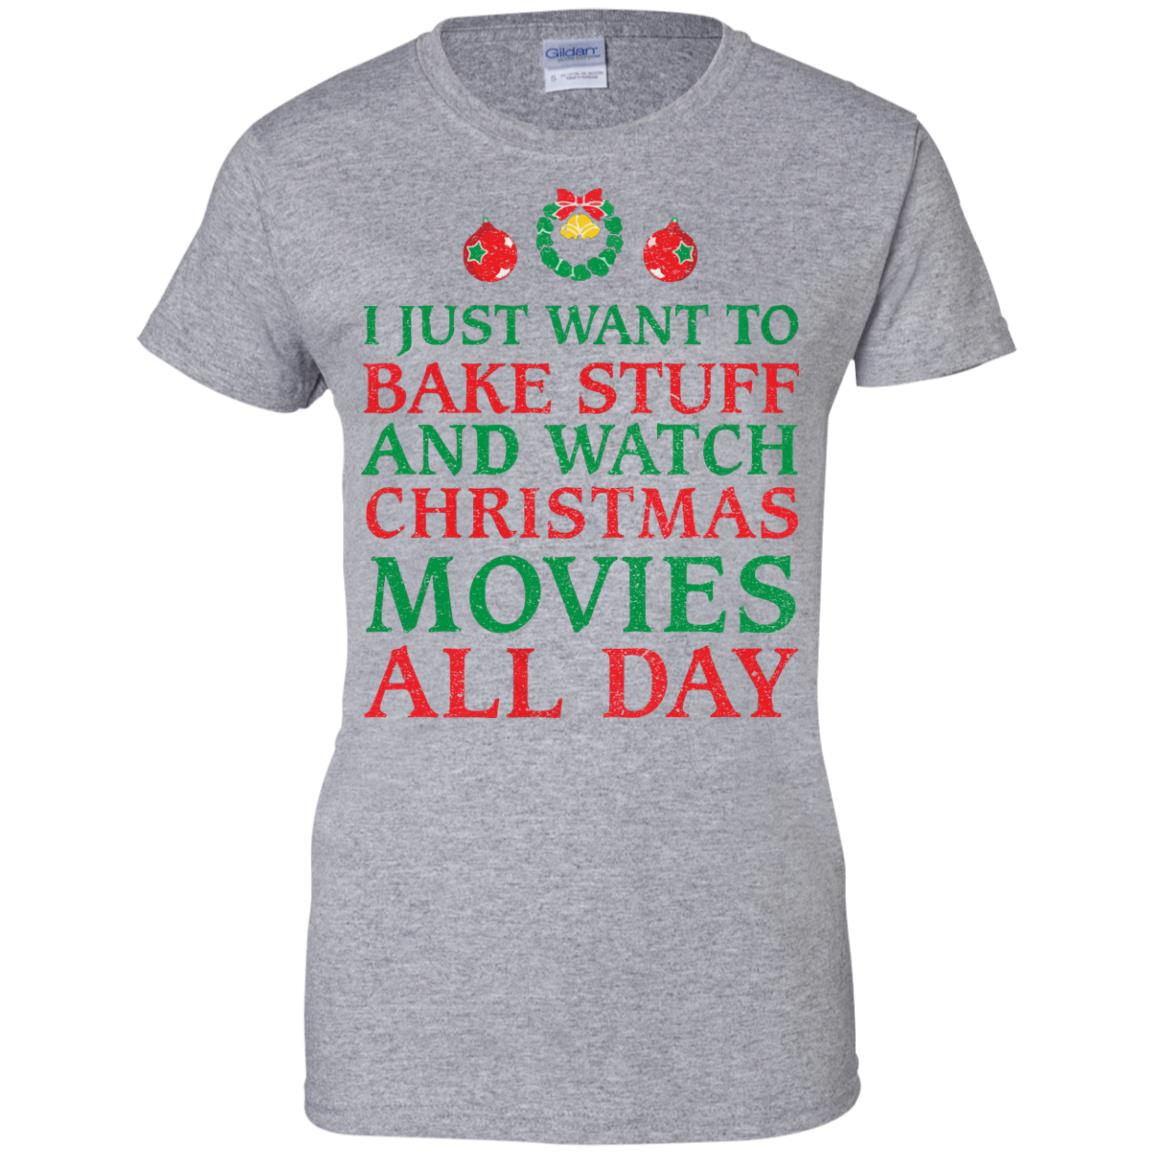 image 2704 - I Just Want to Bake Stuff and Watch Christmas Movie All Day Sweater, Ugly Sweatshirts